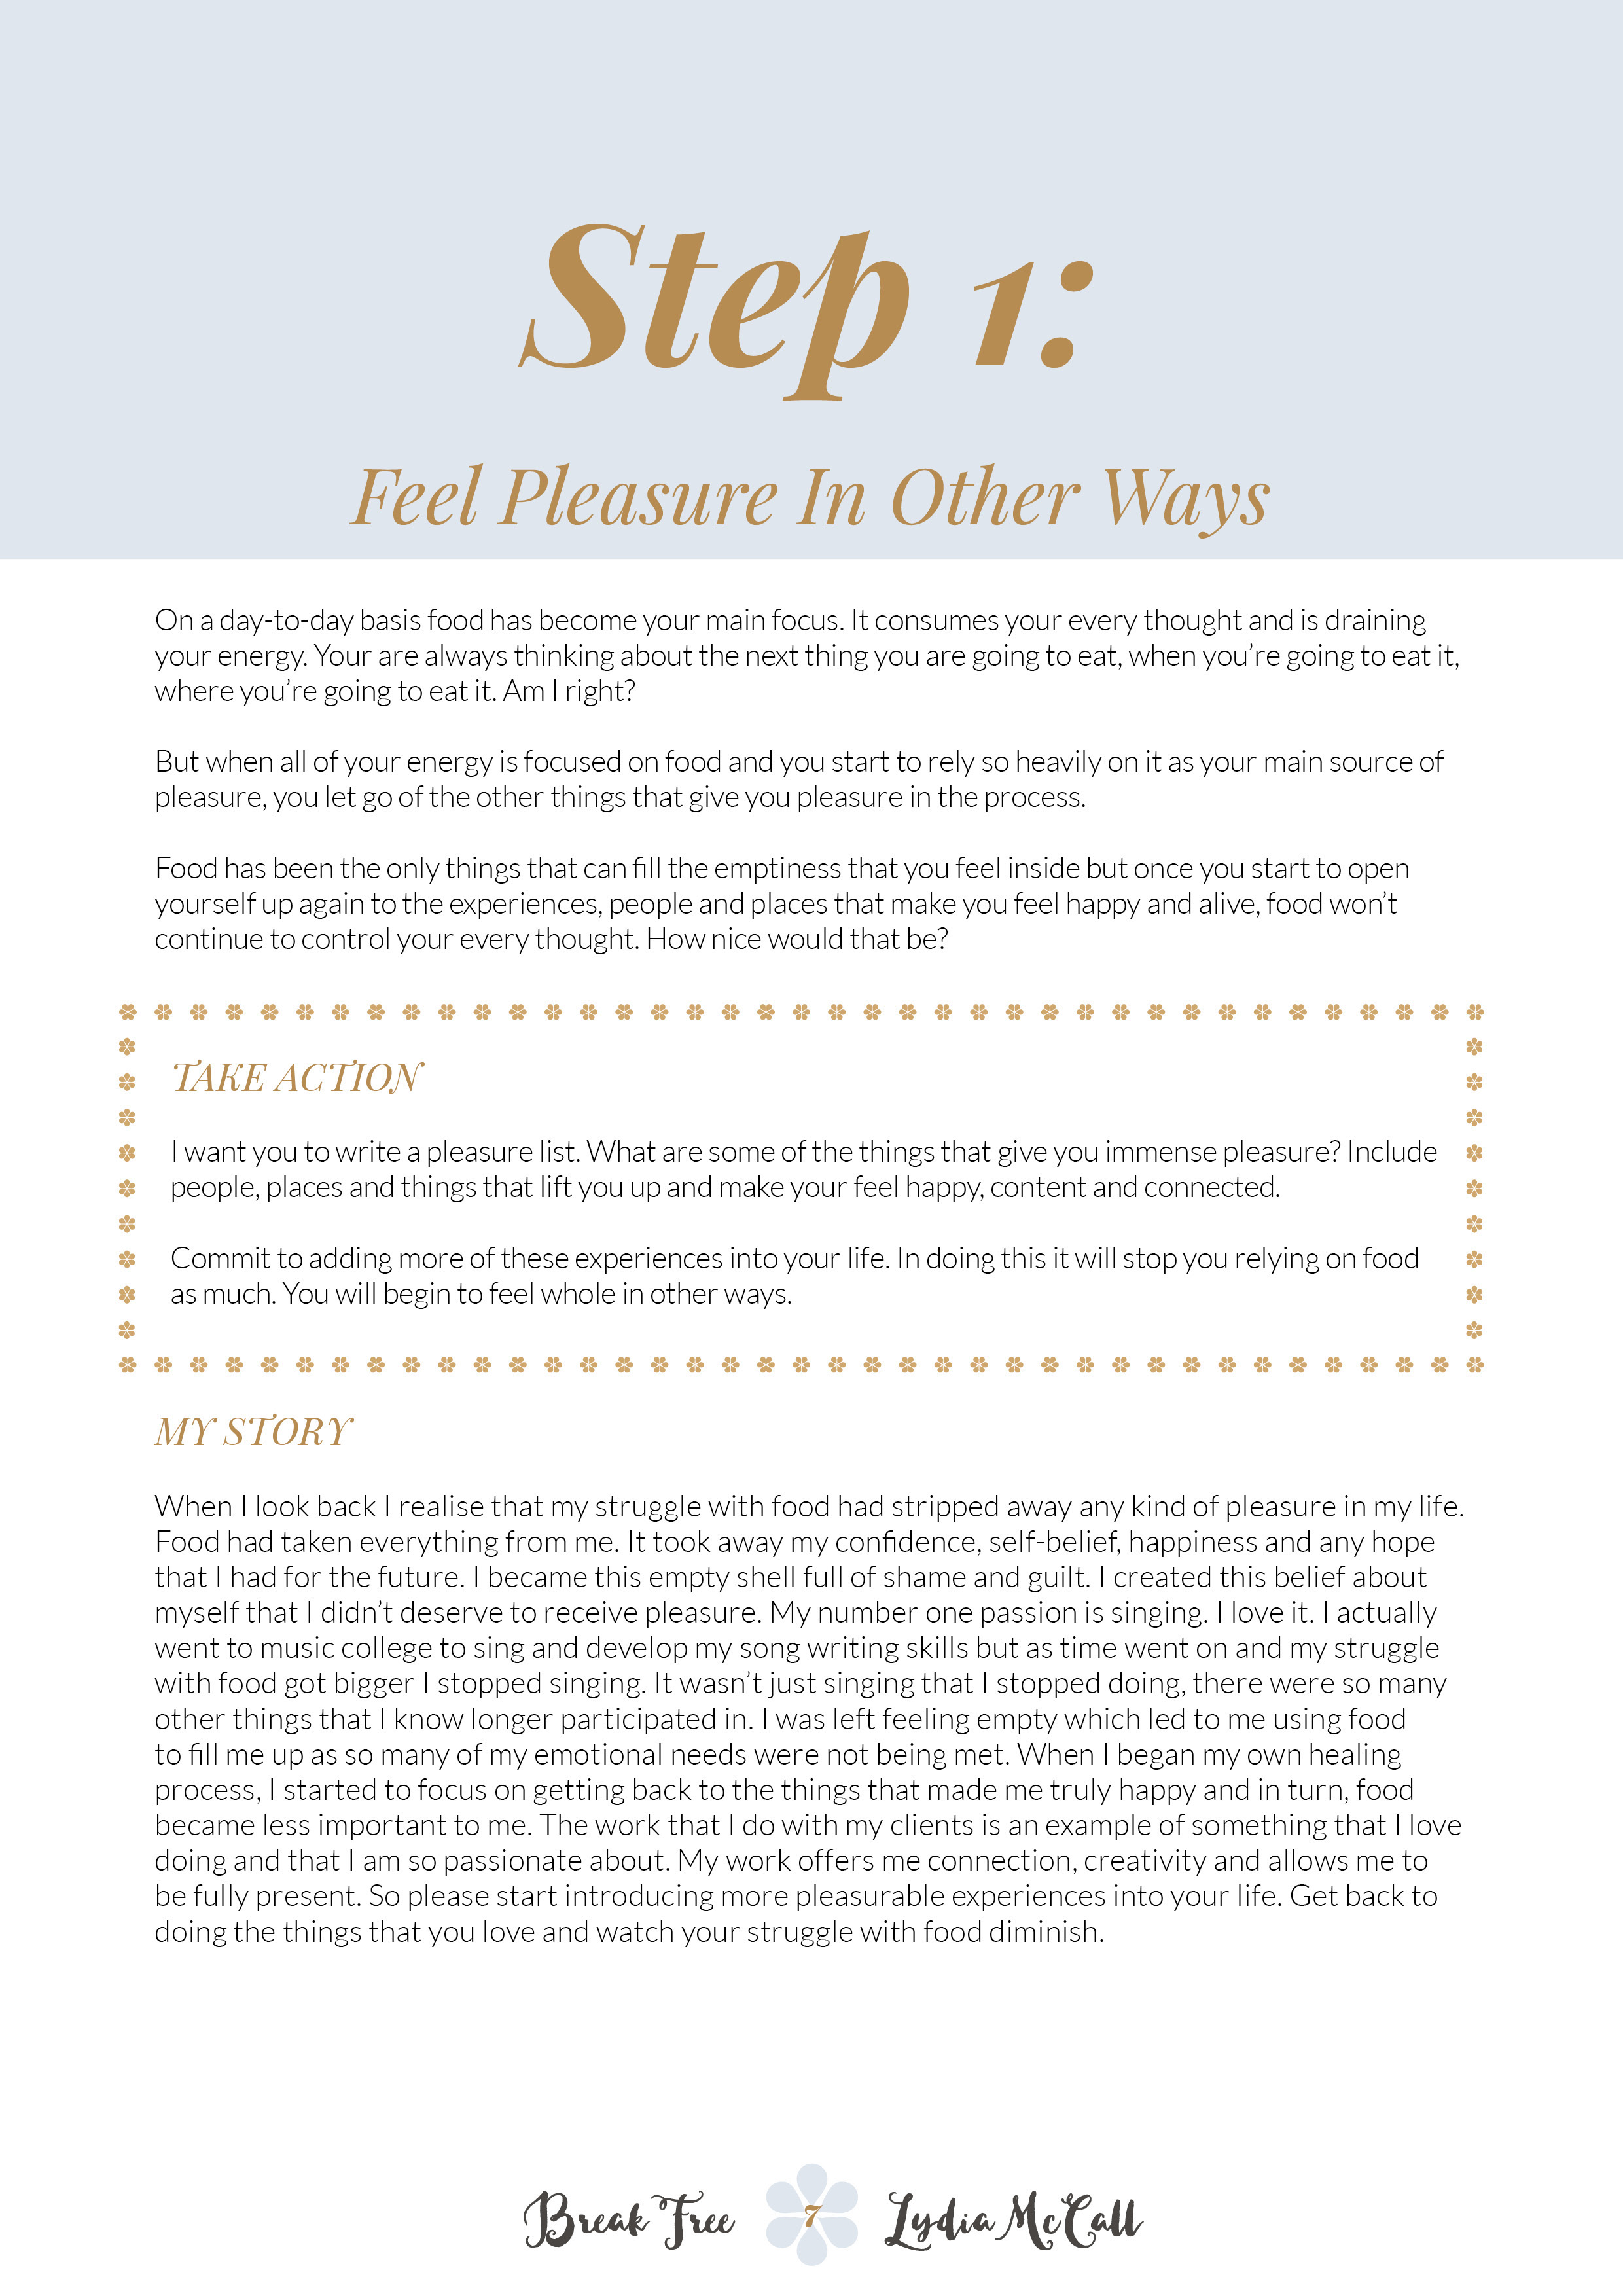 Lorna morris freelance graphic designer this ebook was created for health coach lydia mccall to coincide with her new website launch httplydiamccall fandeluxe PDF